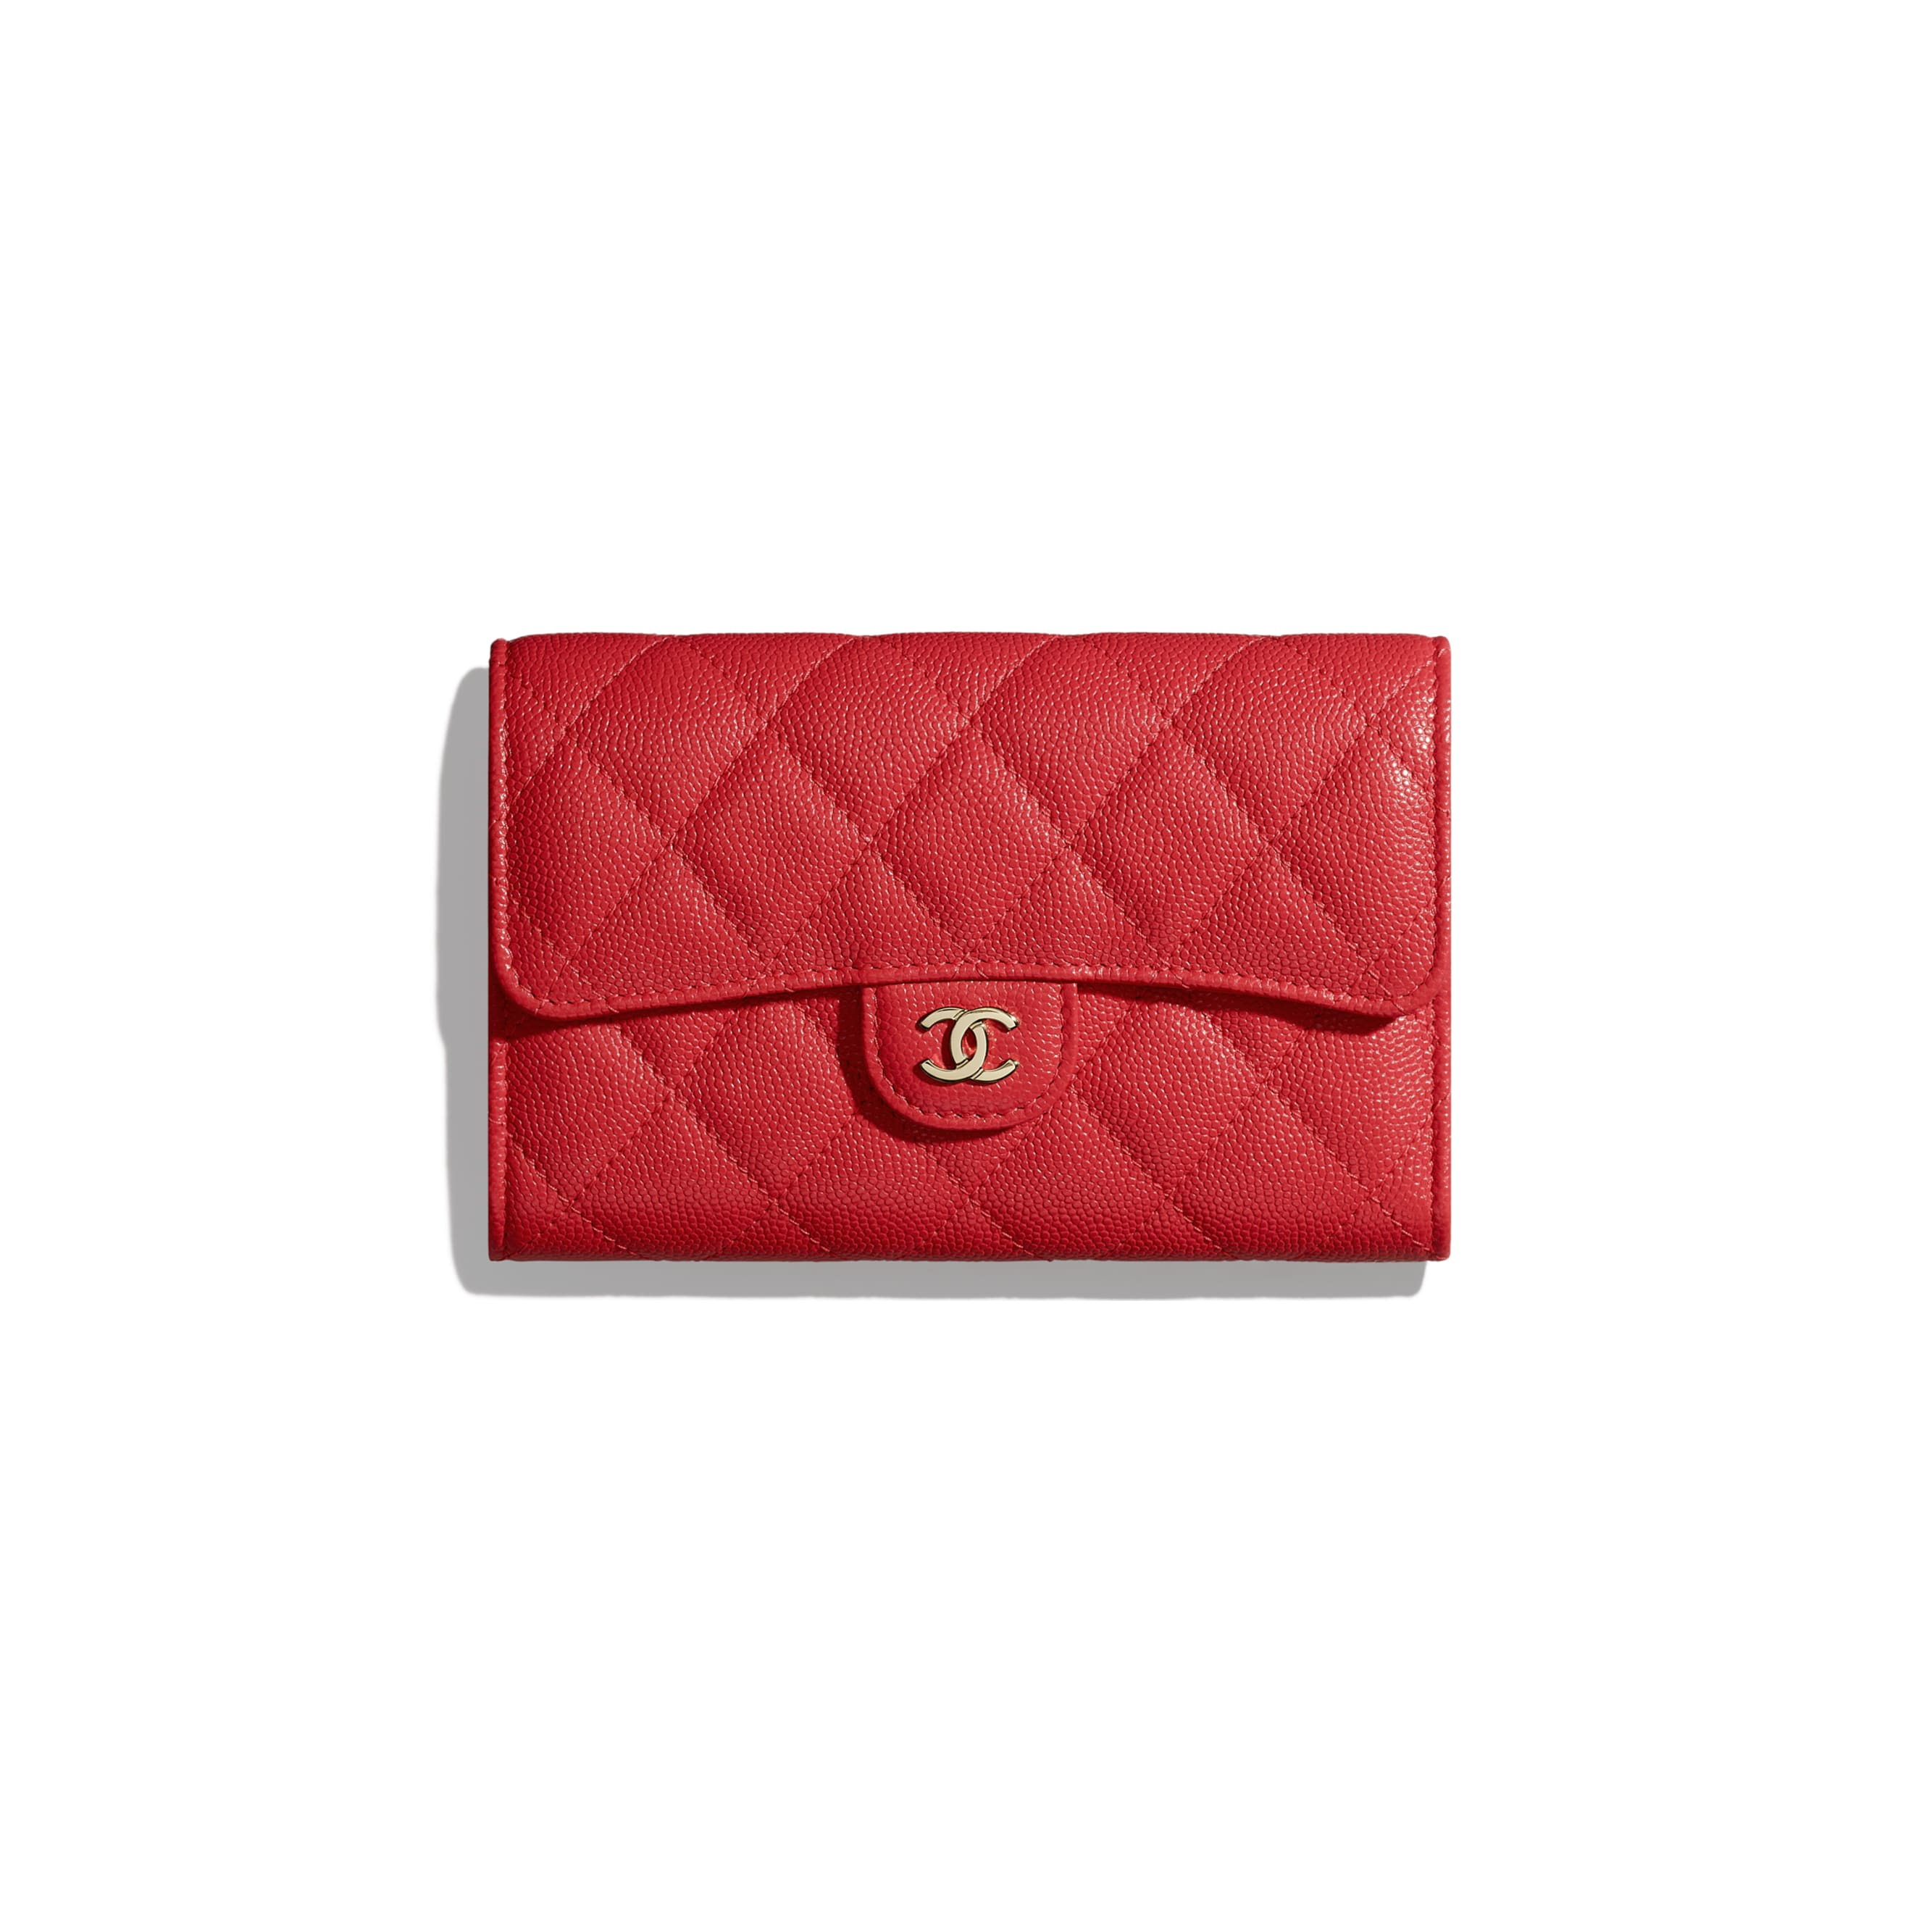 Classic Flap Wallet - Red - Grained Calfskin & Gold-Tone Metal - CHANEL - Default view - see standard sized version